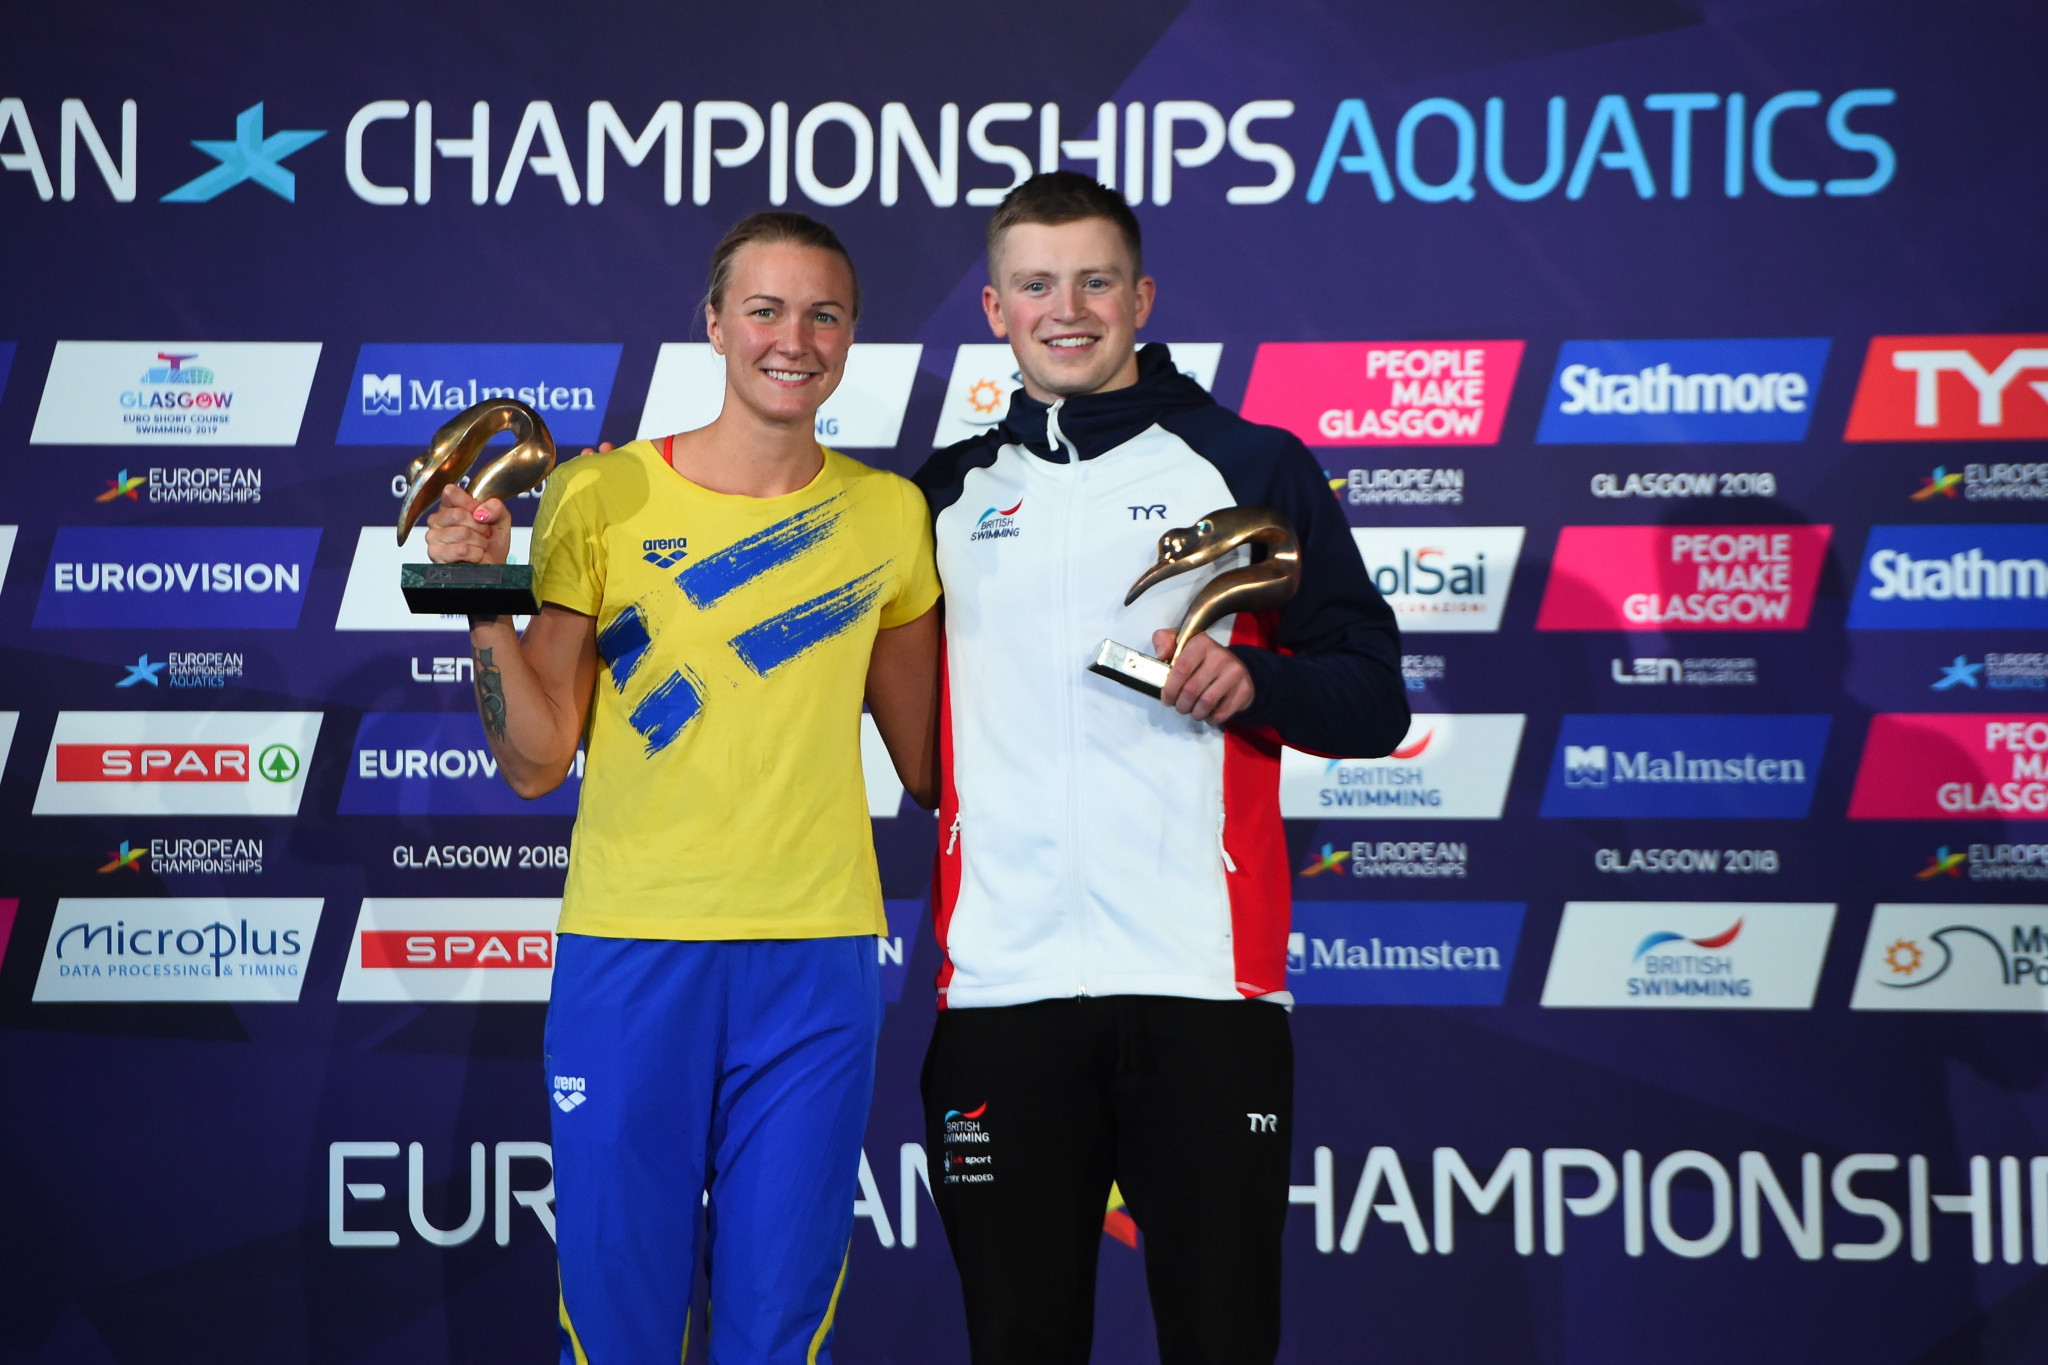 Sweden's Sarah Sjöström and Britain's Adam Peaty were named as swimmers of the Championships ©Getty Images